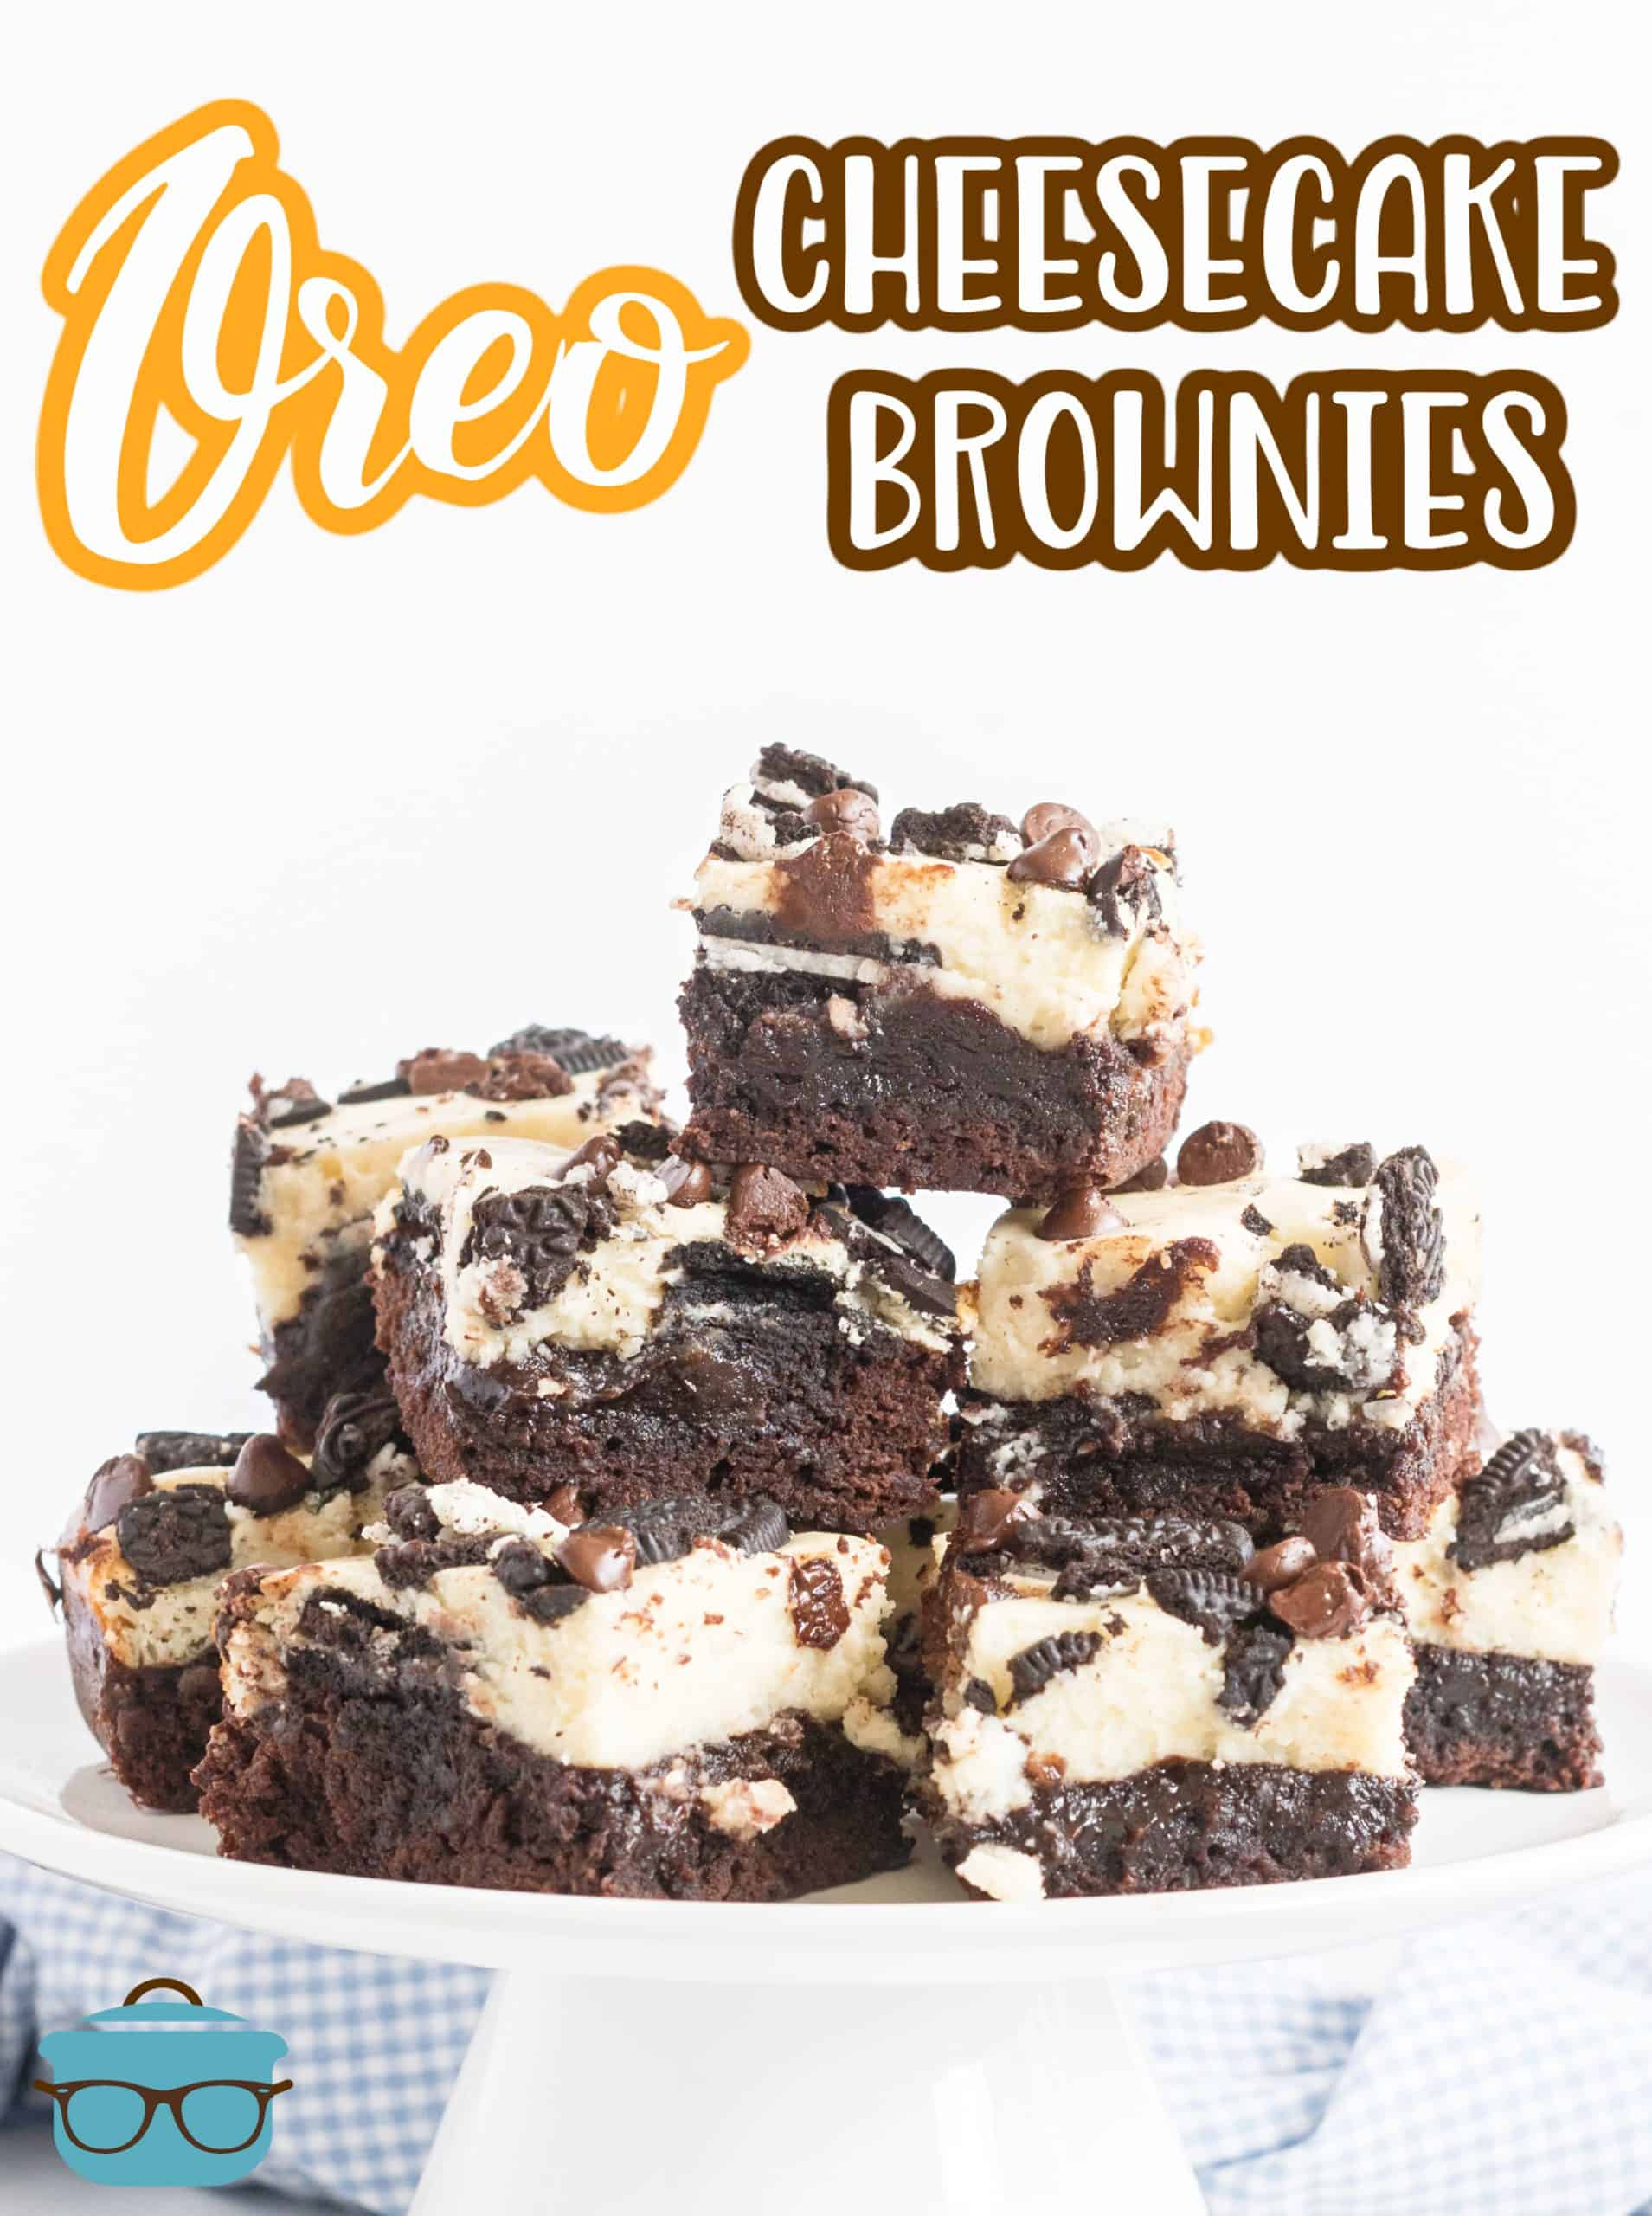 These Oreo Cheesecake Brownies are packed full of delicious chocolate, cheesecake and layers of Oreo cookies. Only a few ingredients and layers of flavor!